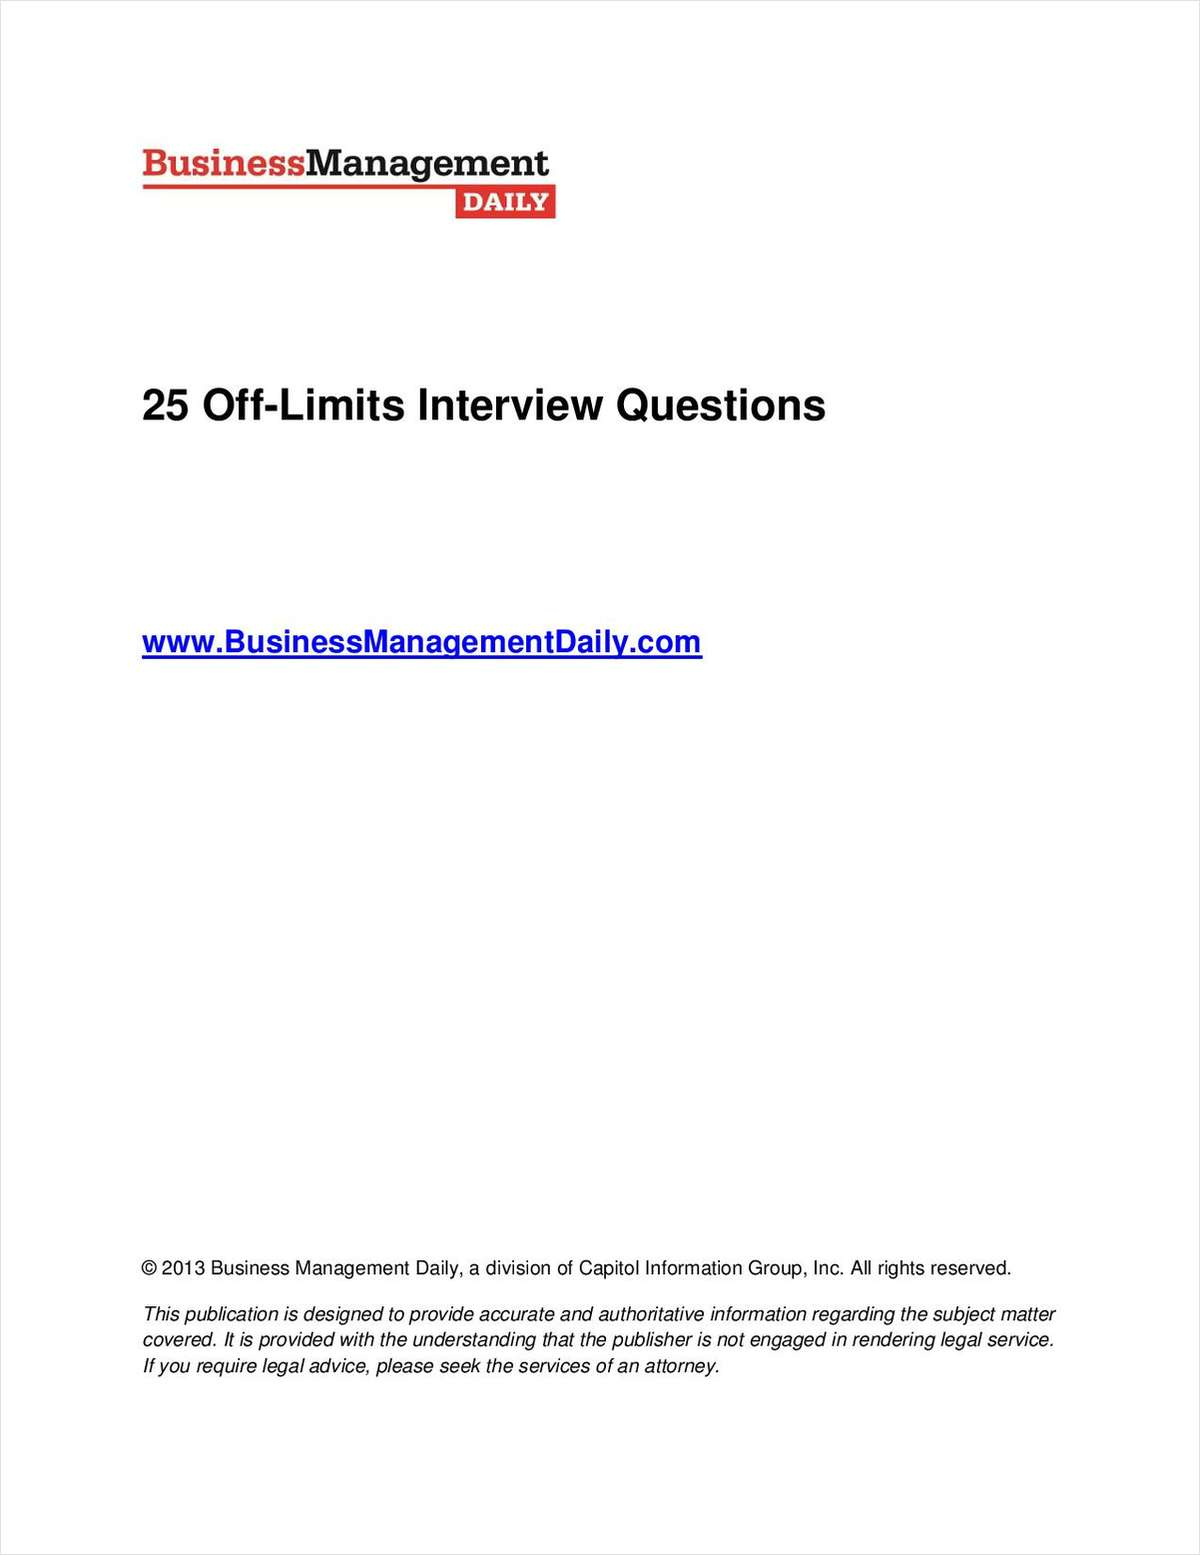 25 Off-Limits Interview Questions